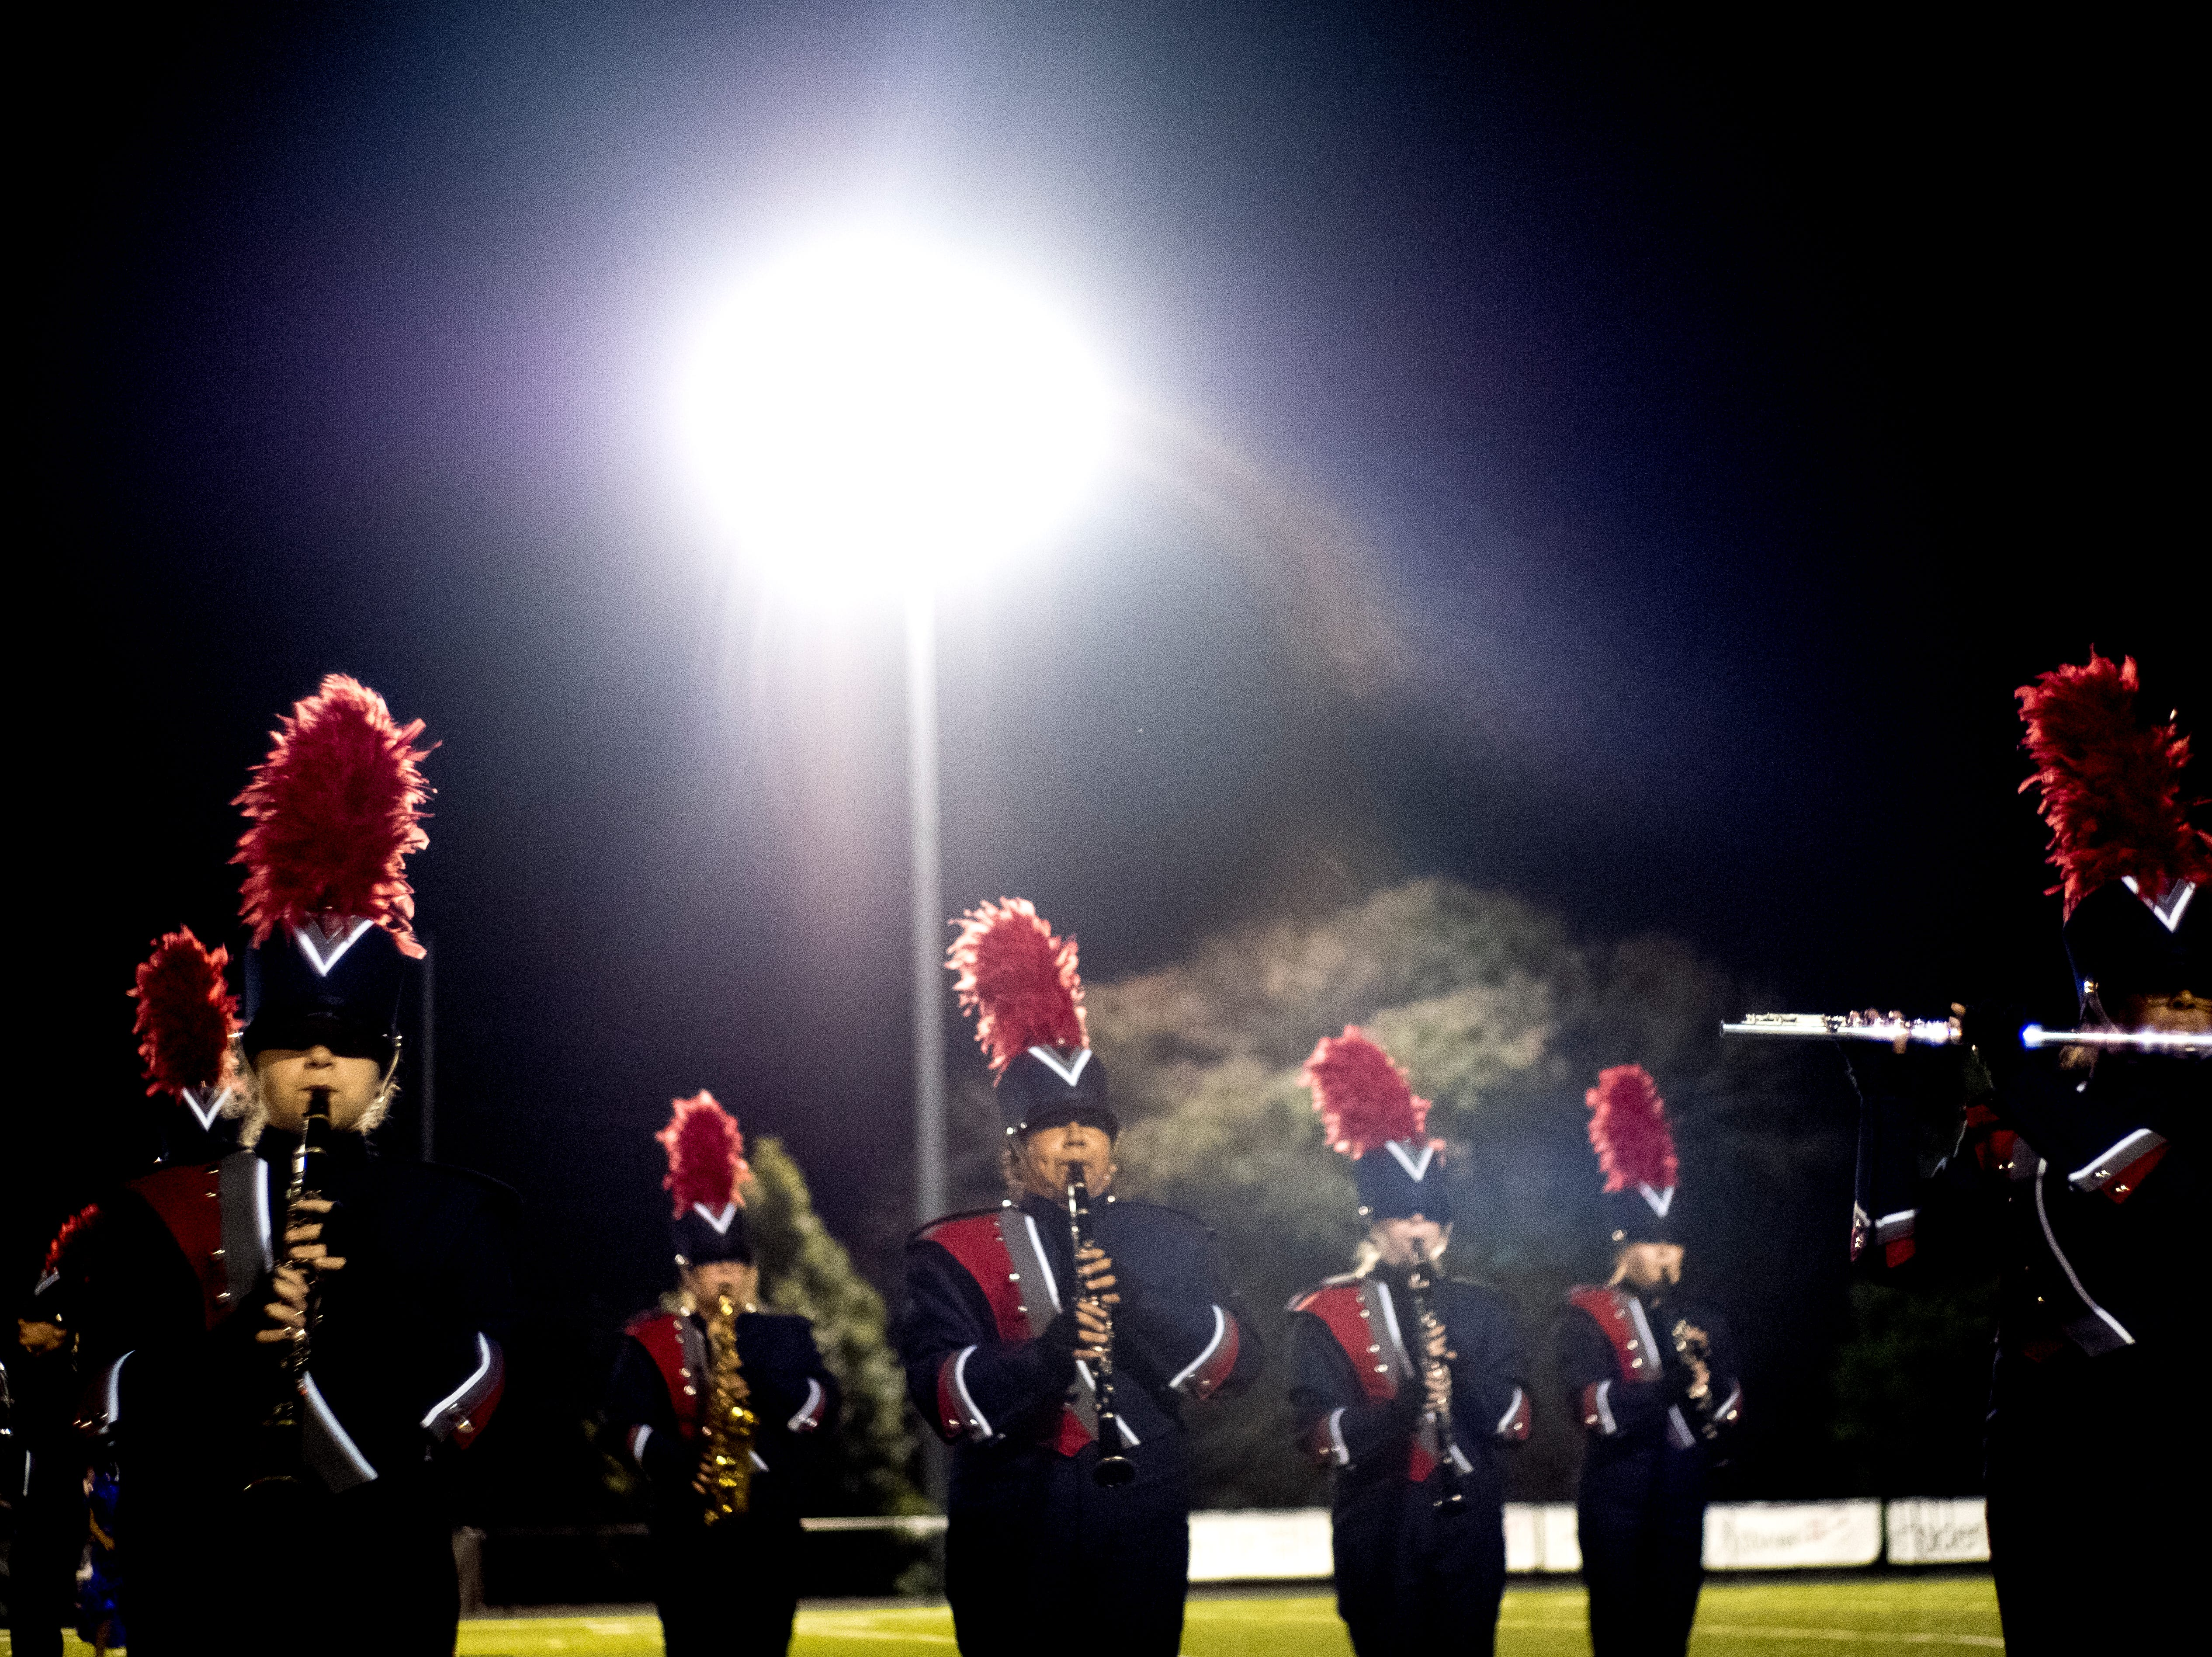 The South-Doyle Marching Band performs during a football game between Central and South-Doyle at Central High School in Knoxville, Tennessee on Friday, October 19, 2018.